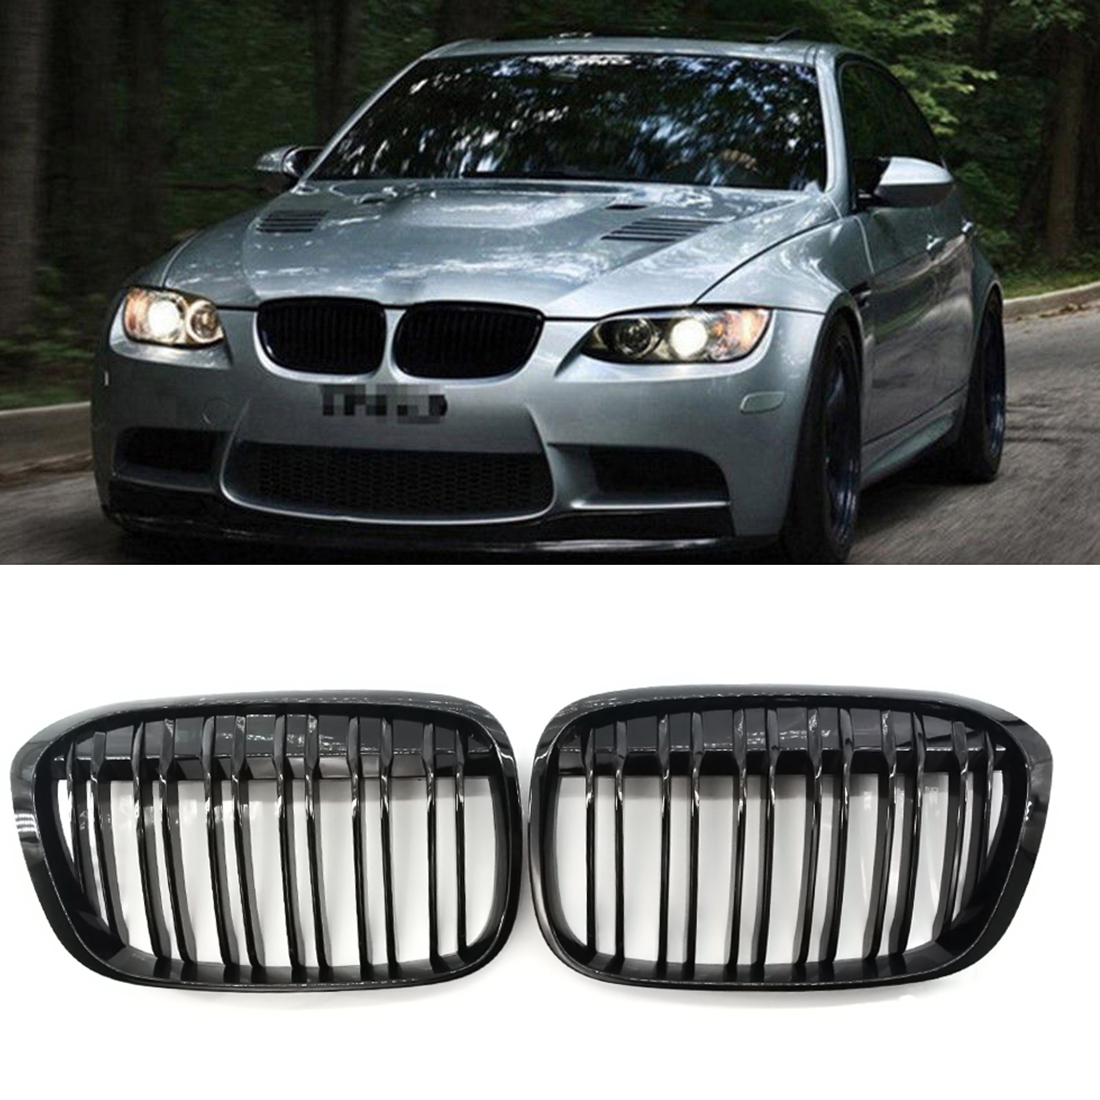 Details about  Gloss Black M Style Front Bumper bar Kidney Grille for BMW F48 F49 X1 16-17 GZ.A F48/49LSM/YSM/LS  #D2Details about  Gloss Black M Style Front Bumper bar Kidney Grille for BMW F48 F49 X1 16-17 GZ.A F48/49LSM/YSM/LS  #D2